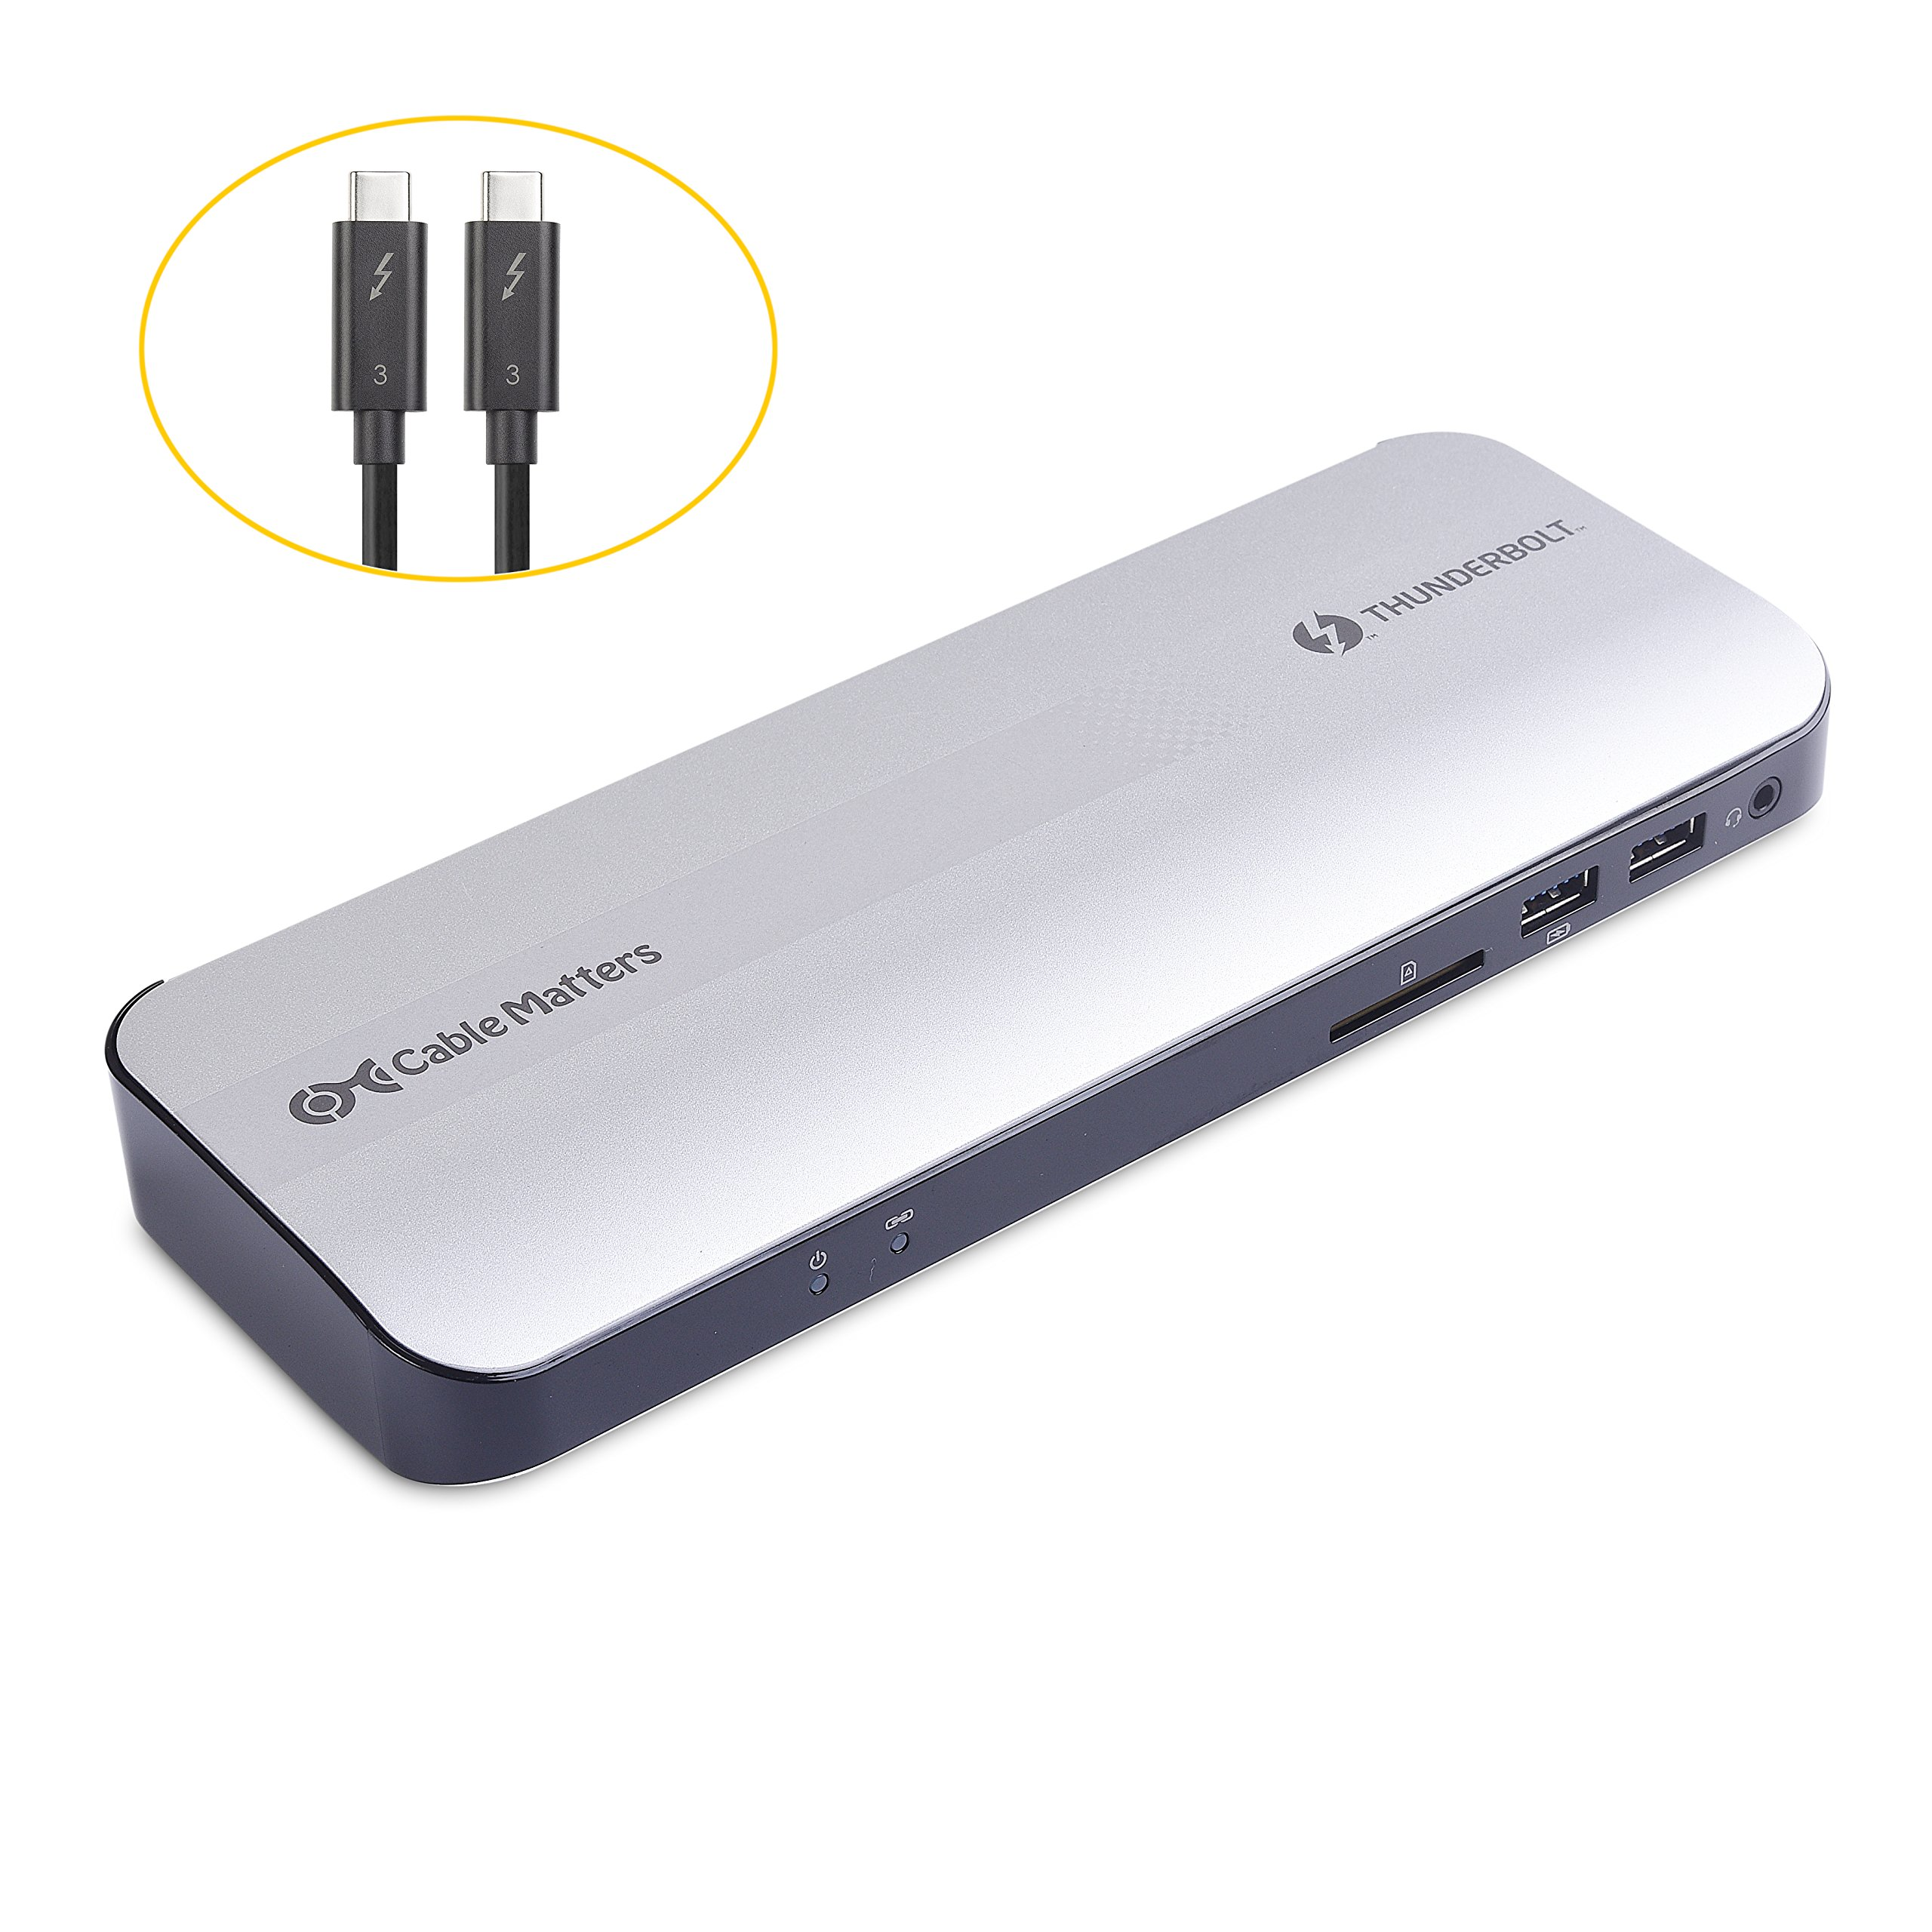 [Certified] Cable Matters Aluminum Thunderbolt 3 Docking Station with Dual 4K 60Hz Video and 60W Power Delivery for Windows & Mac (Not Compatible with USB-C Ports without the Thunderbolt Logo) by Cable Matters (Image #1)